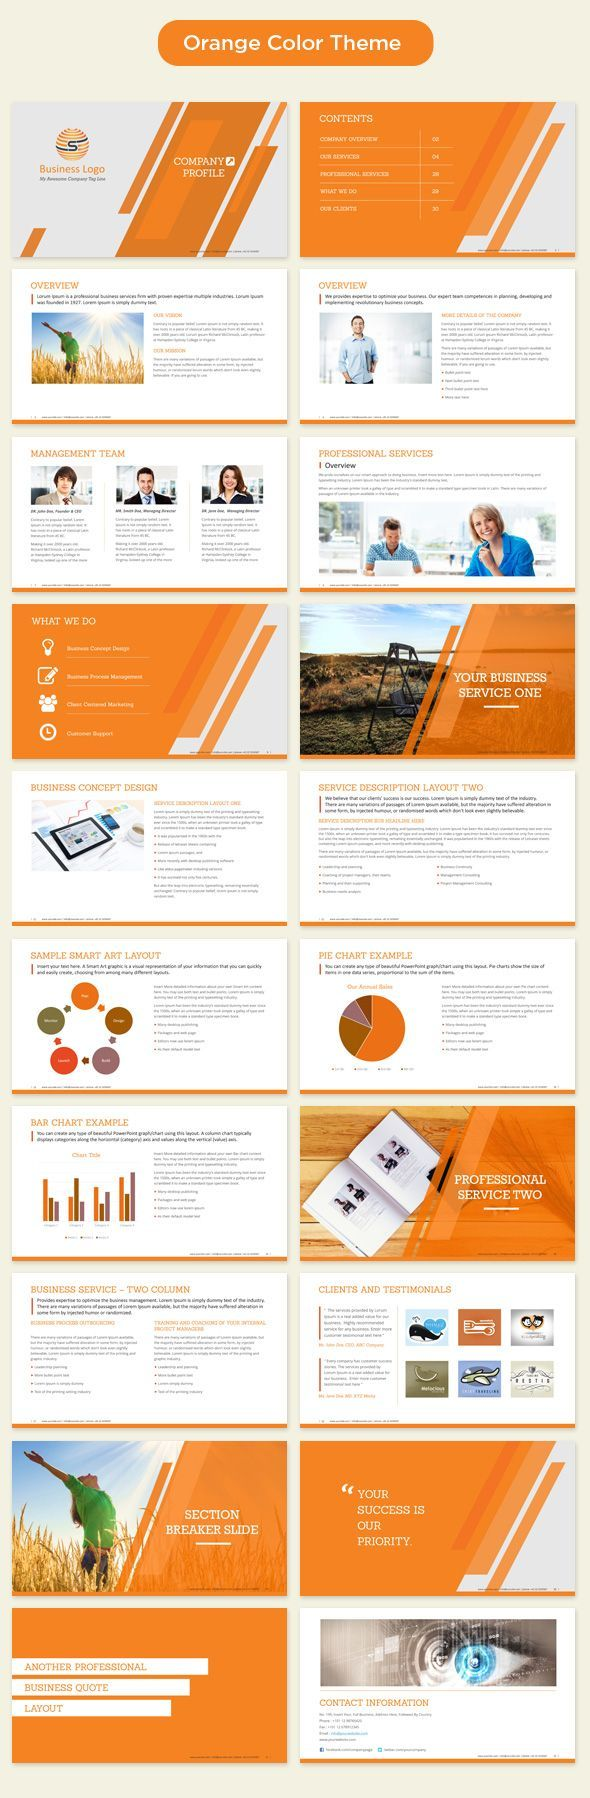 Professional Business Profile Template Company Profile Template Powerpointthe Template Is Available In 4 .